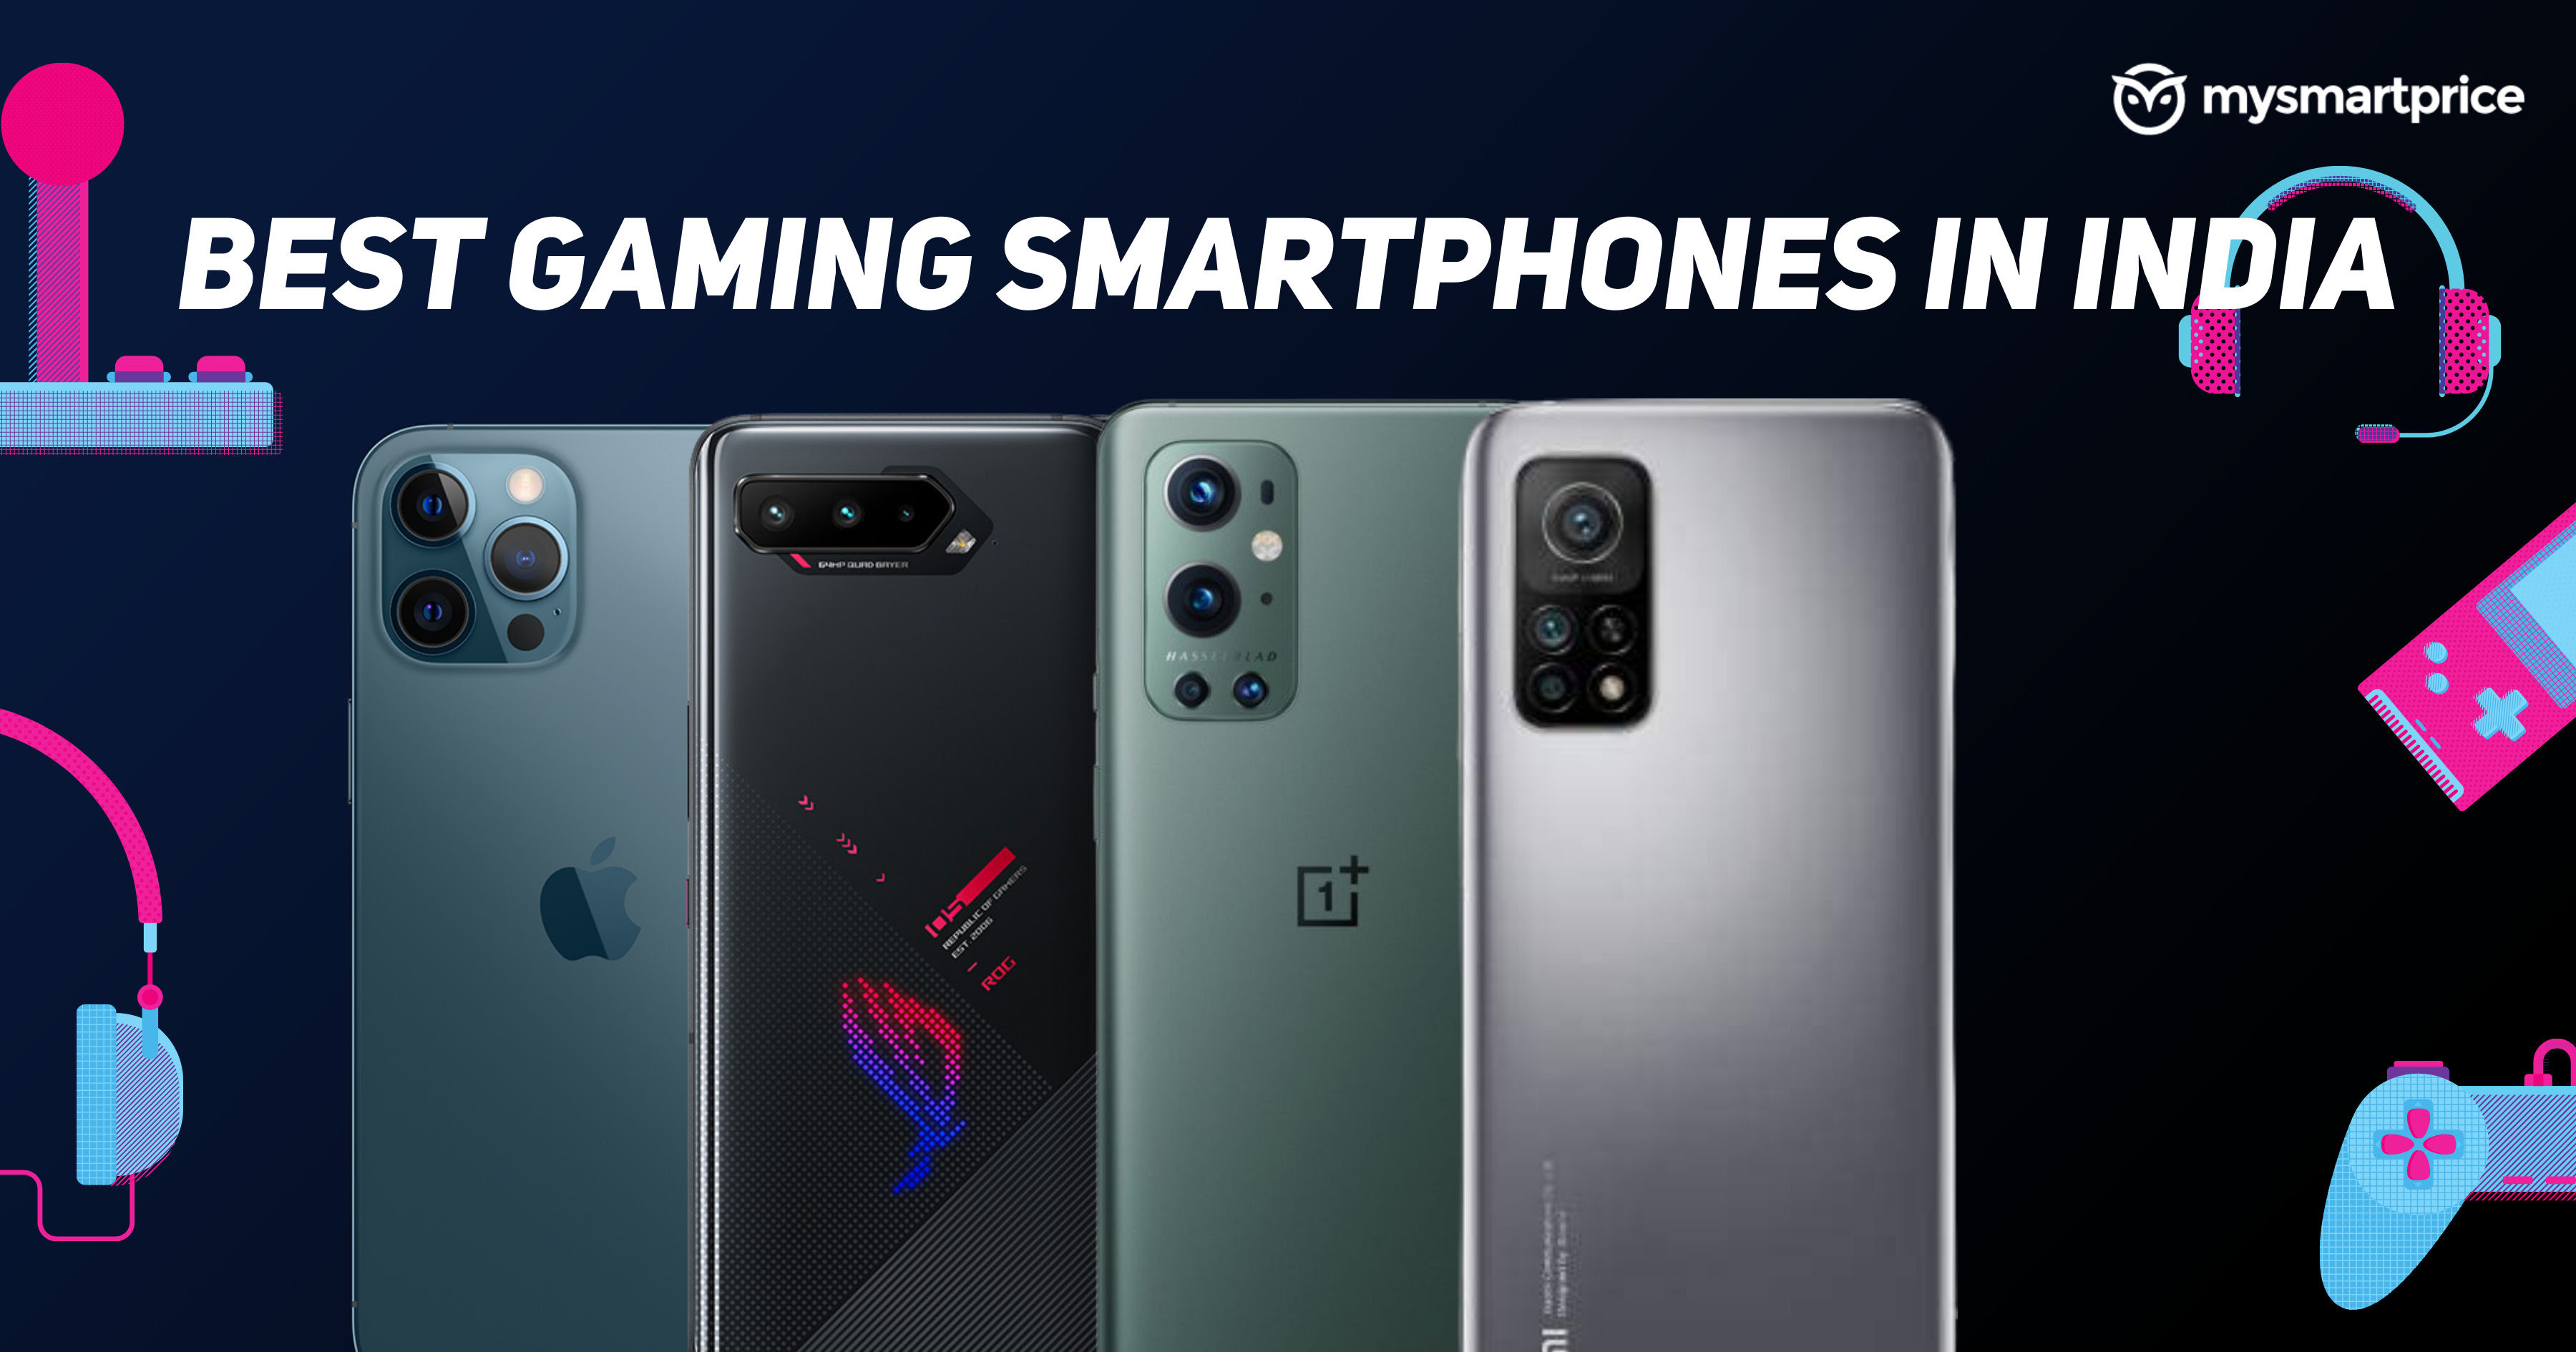 Best Gaming Phones in India 2021: OnePlus 9R, Realme X7 Pro, ASUS ROG Phone 5, and More